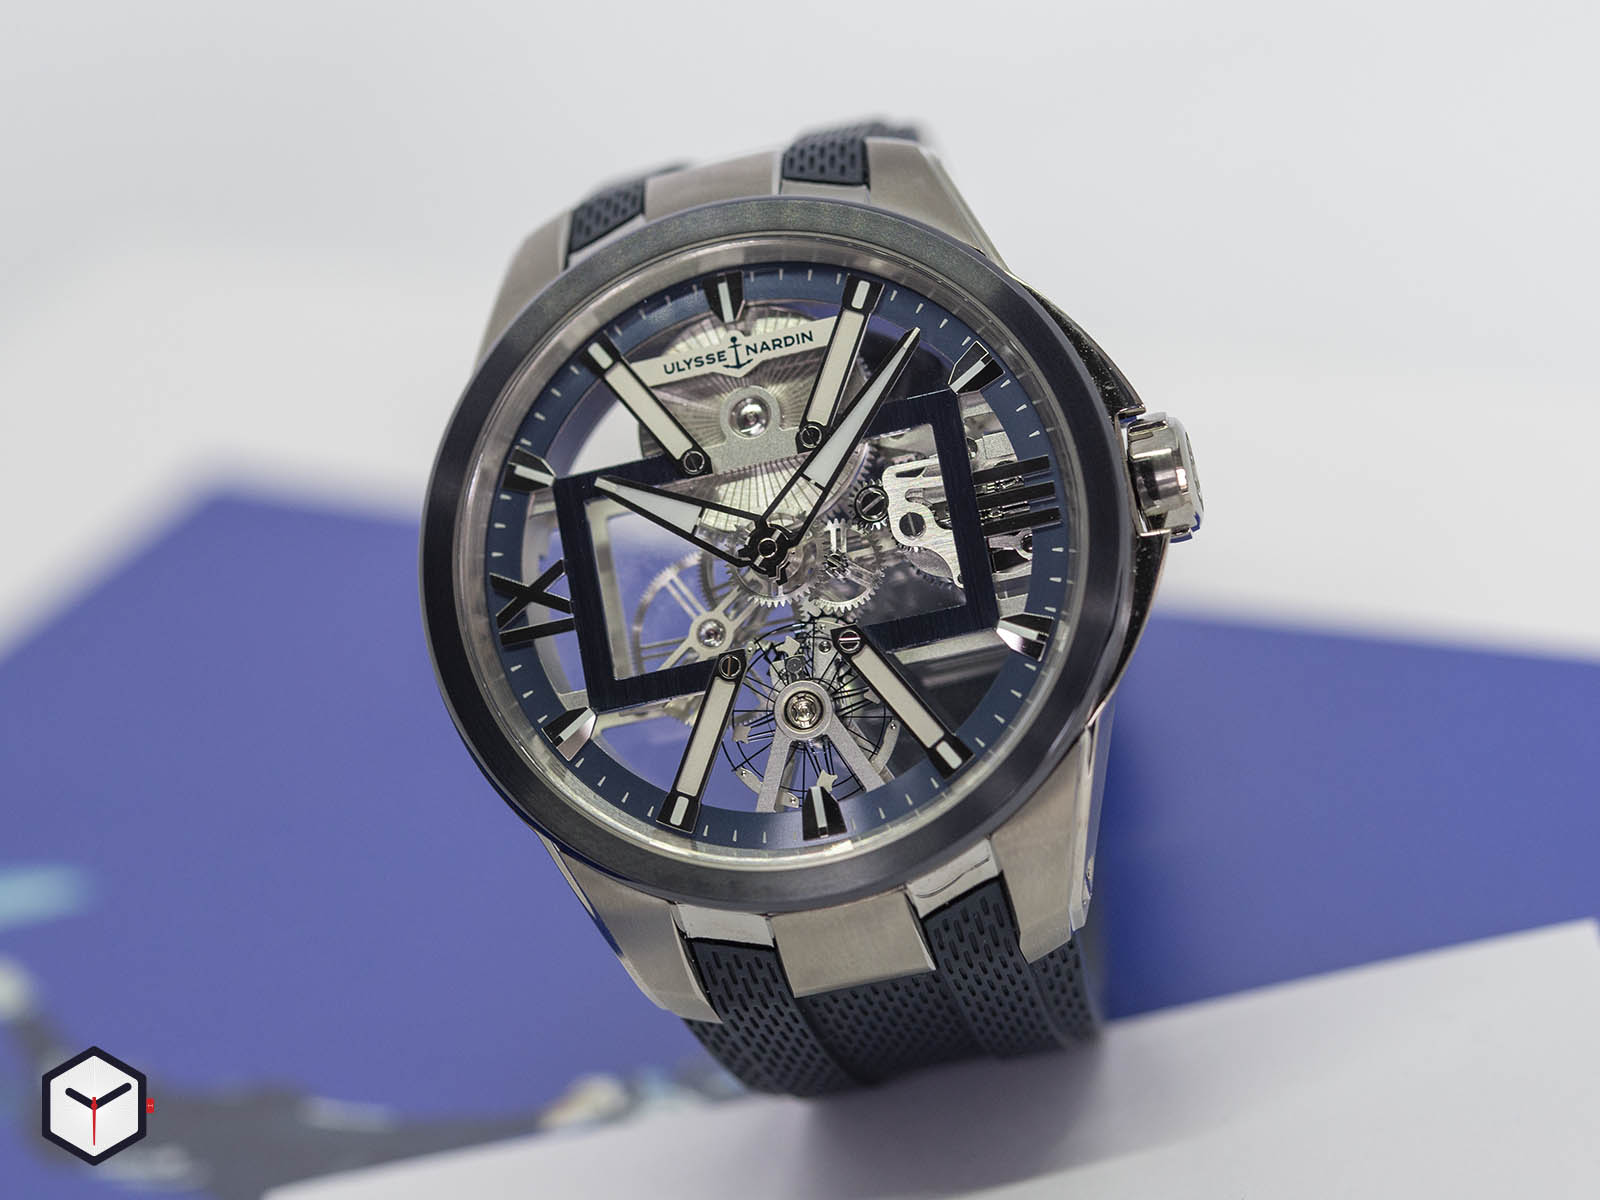 93713-260-3-03-ulysse-nardin-executive-skeleton-x-1.jpg